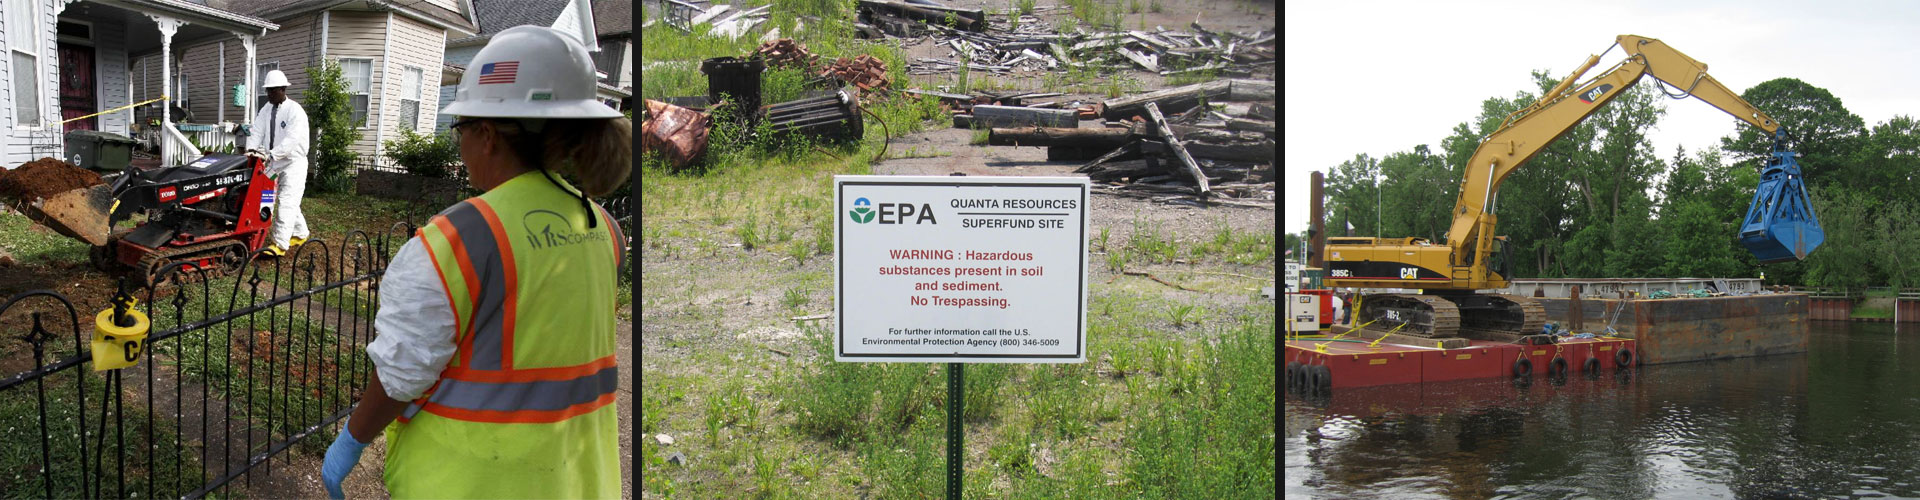 Environmental Remediation and Risk Management